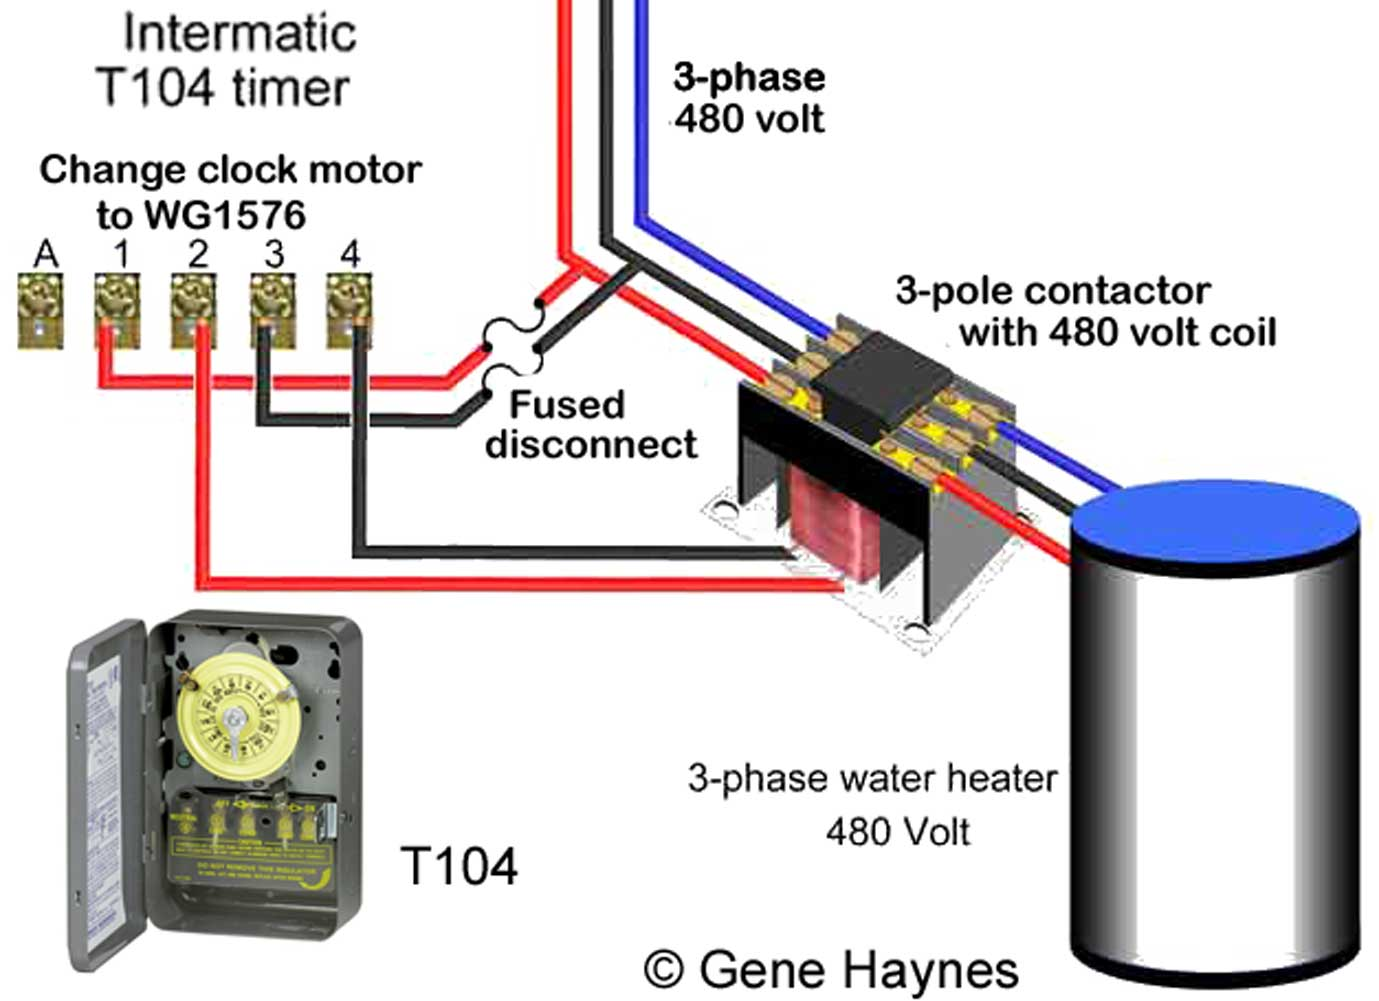 hight resolution of 480volt timer control 480 v 3 phase using t104 timer change 240v wg1573 clock motor to wg1576 clock motor